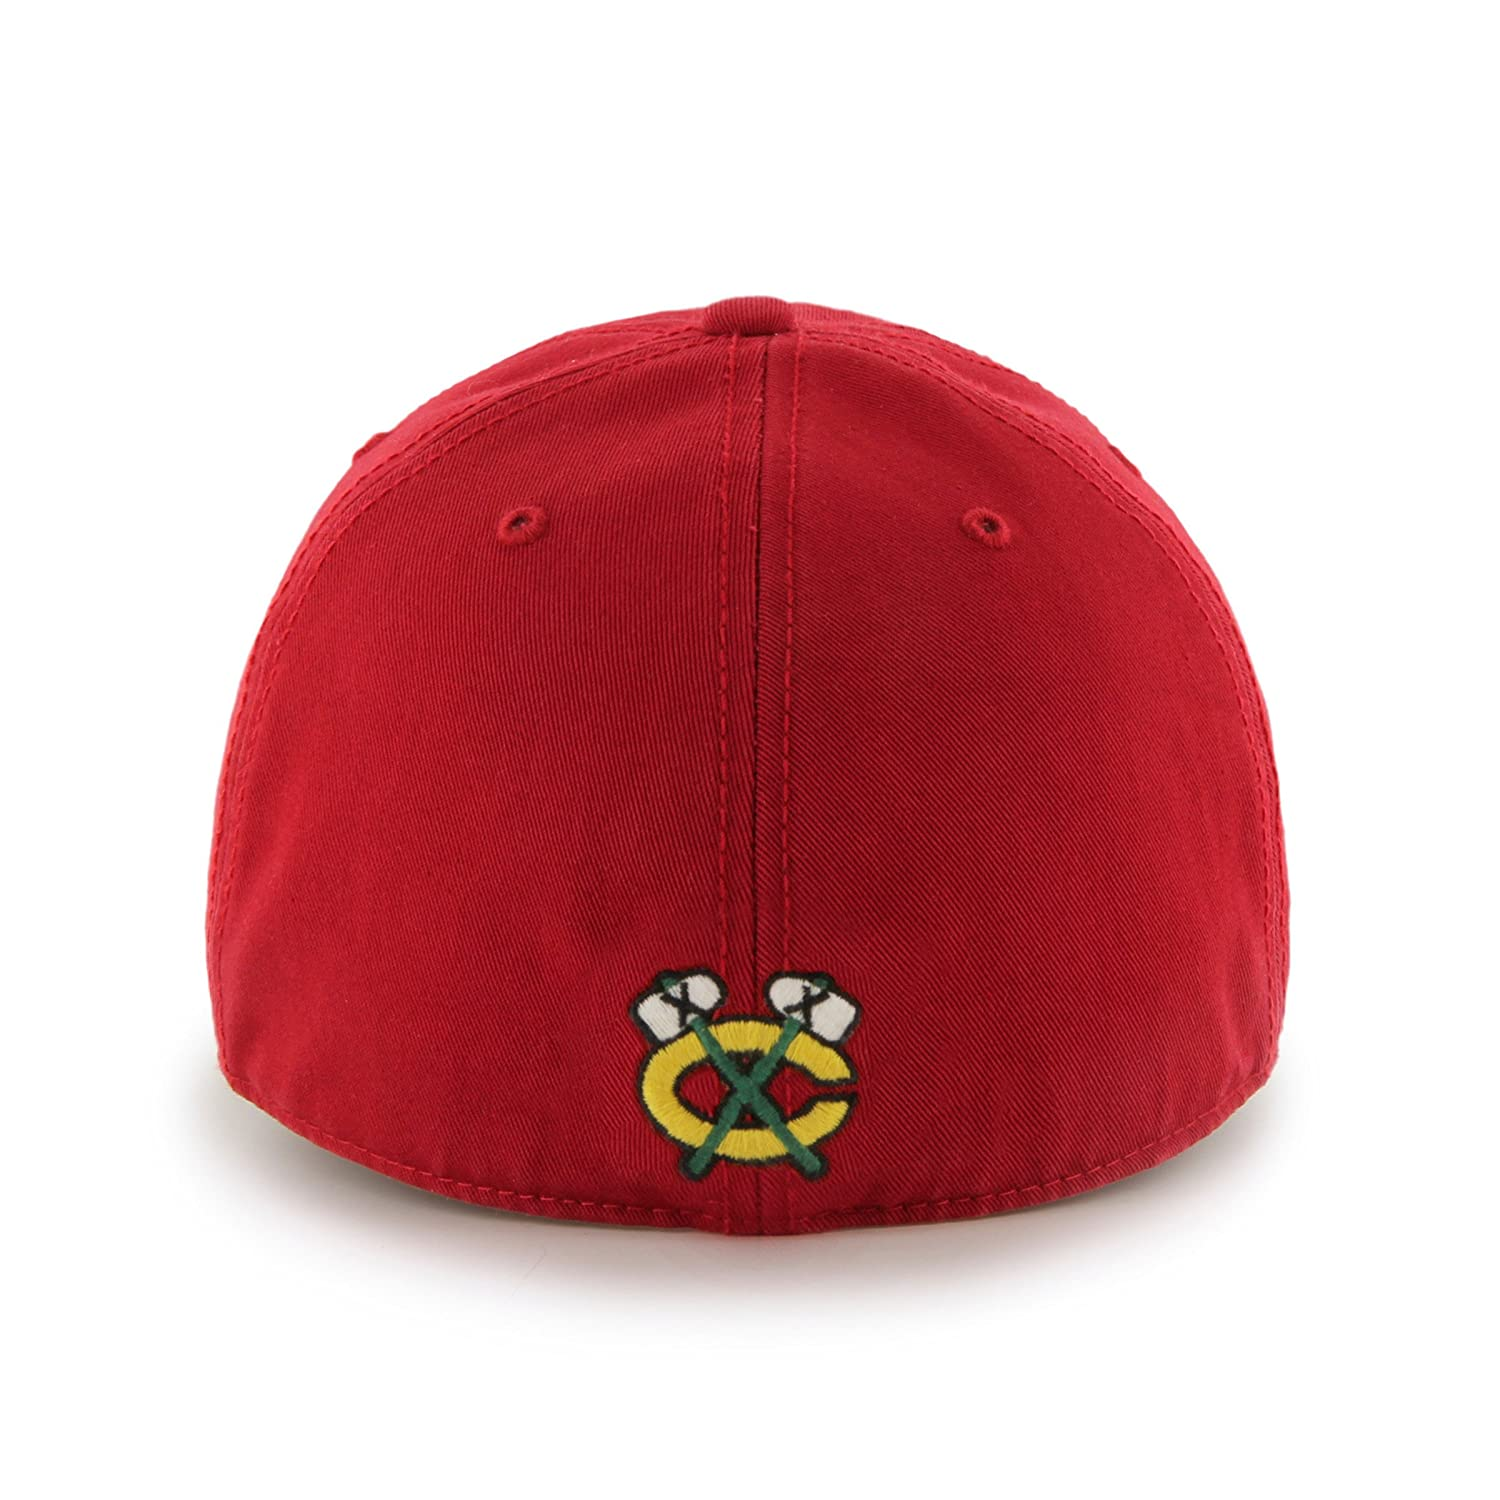 Red B NHL Chicago Blackhawks Franchise Fitted Hat XX-Large